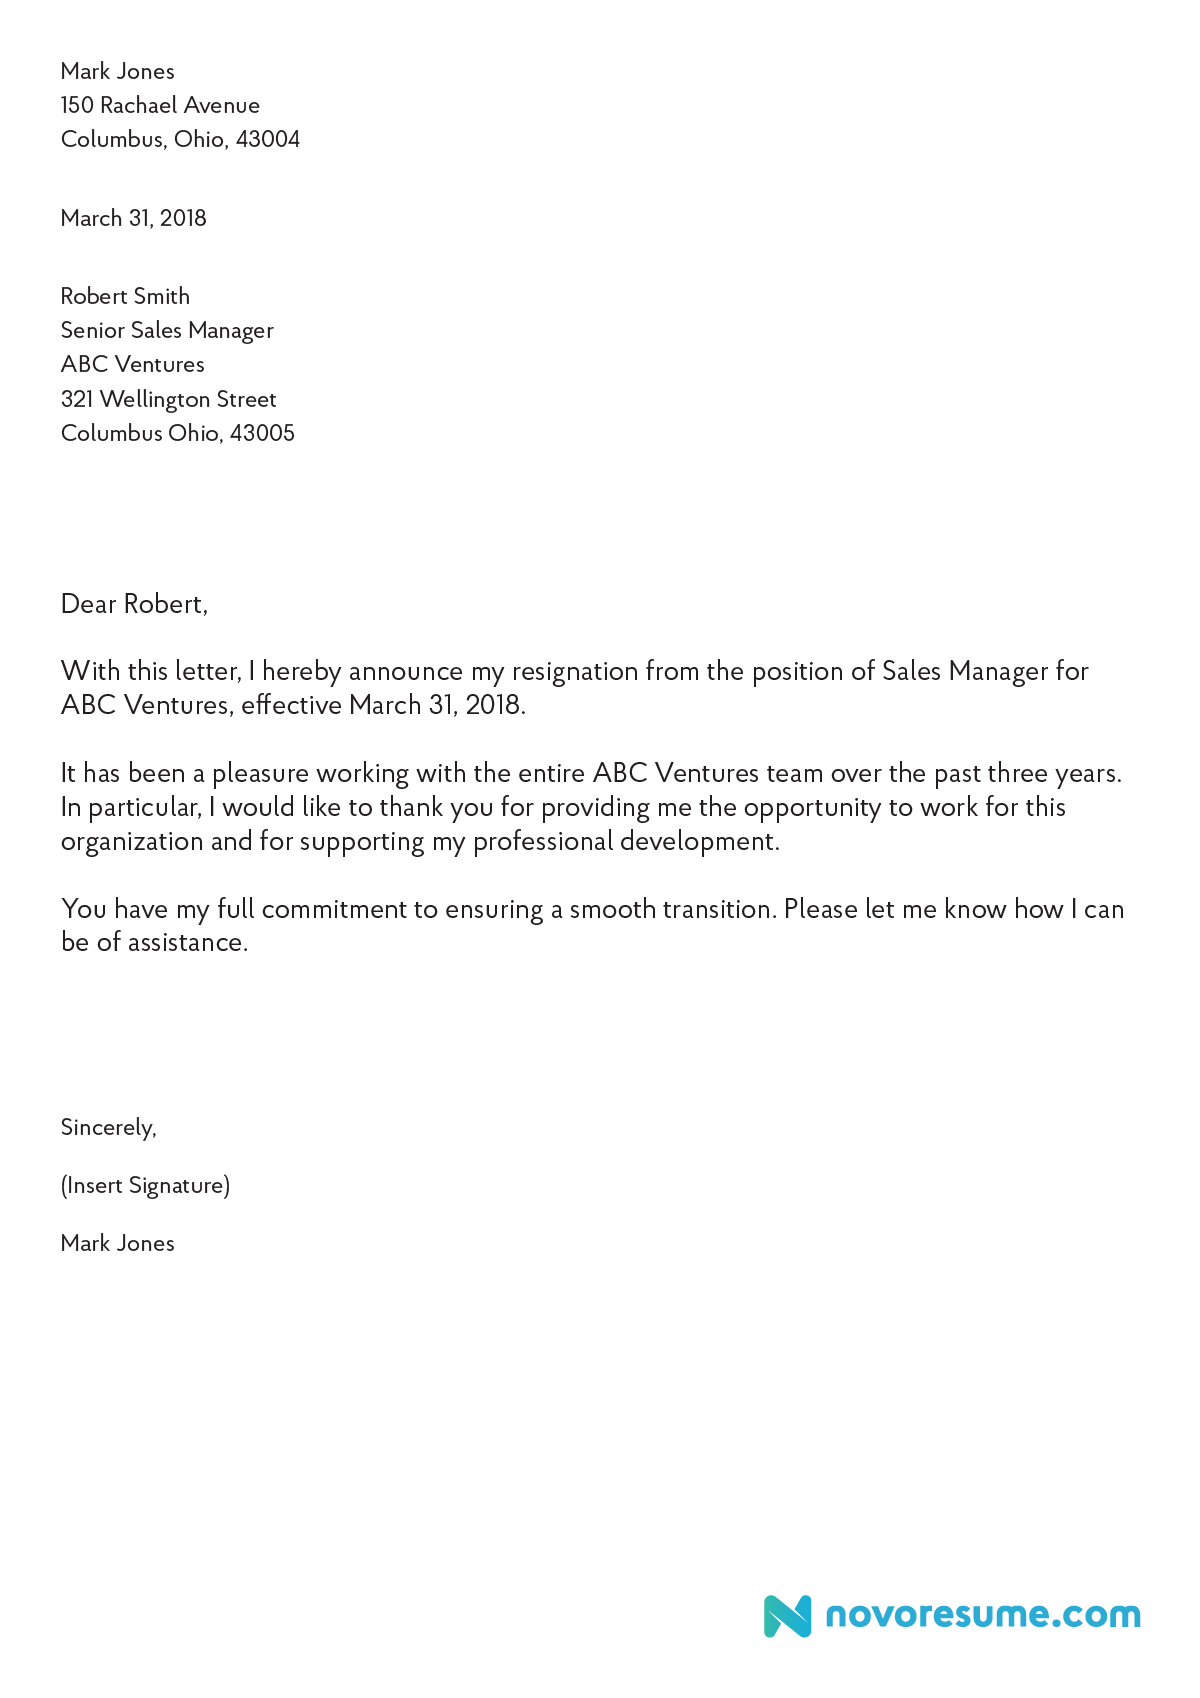 How To Write A Letter Of Resignation 2019 Extensive Guide